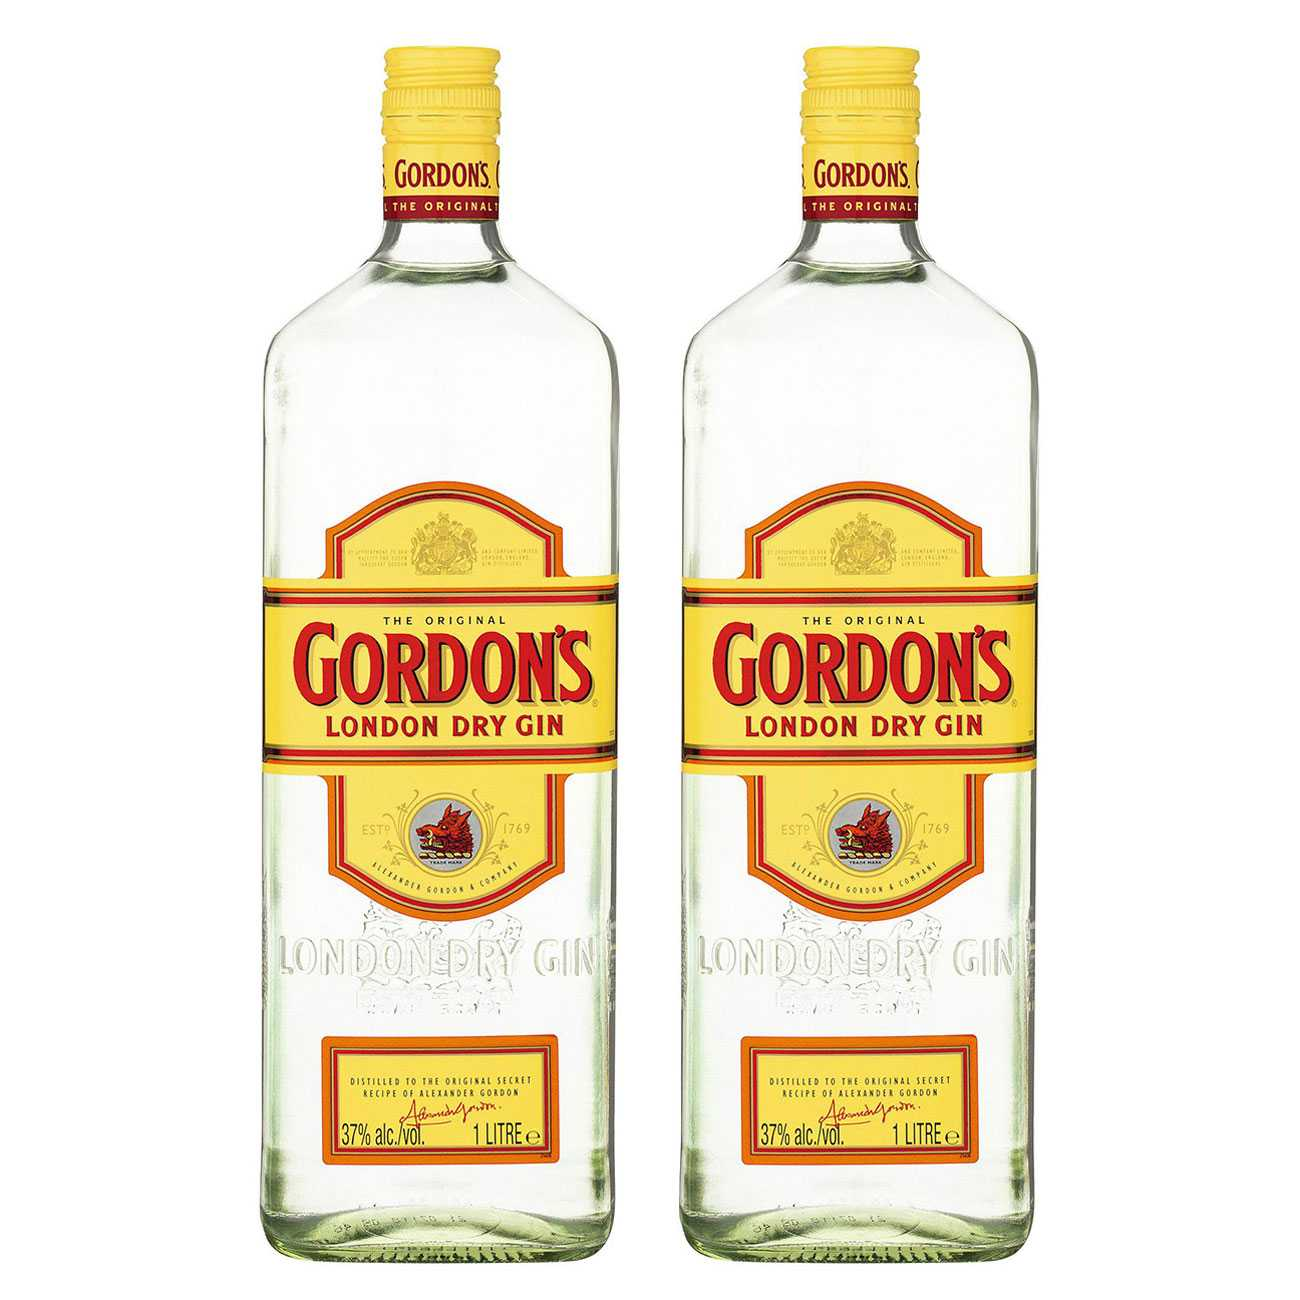 Gin, LONDON DRY GIN 2000 ML, Gordon's